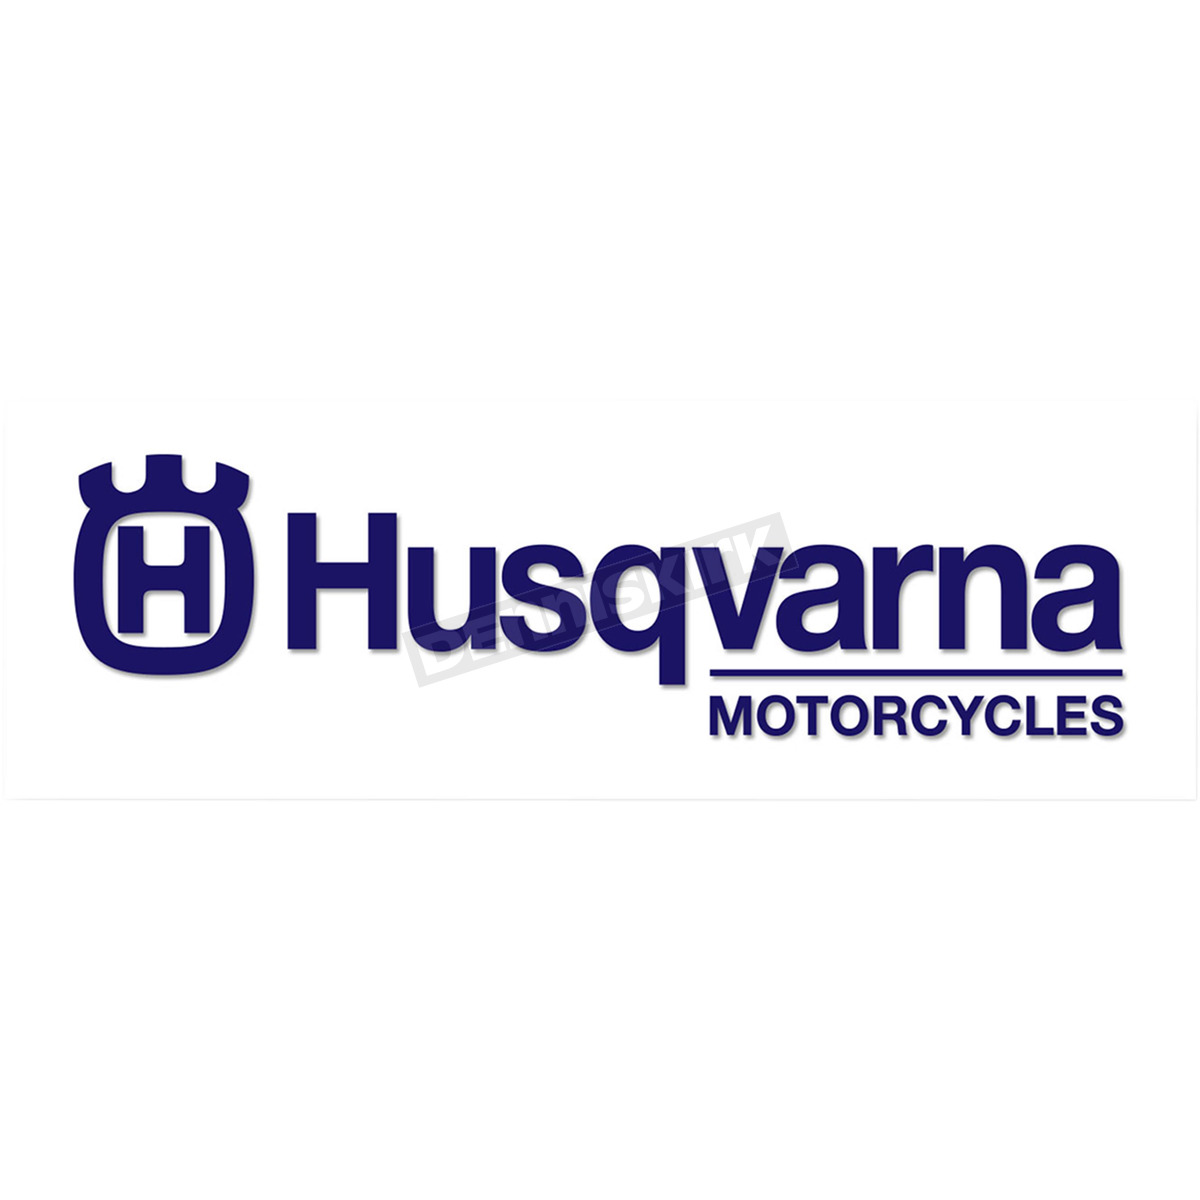 Factory Effex Husqvarna Logo Decals 22 90600 Dirt Bike